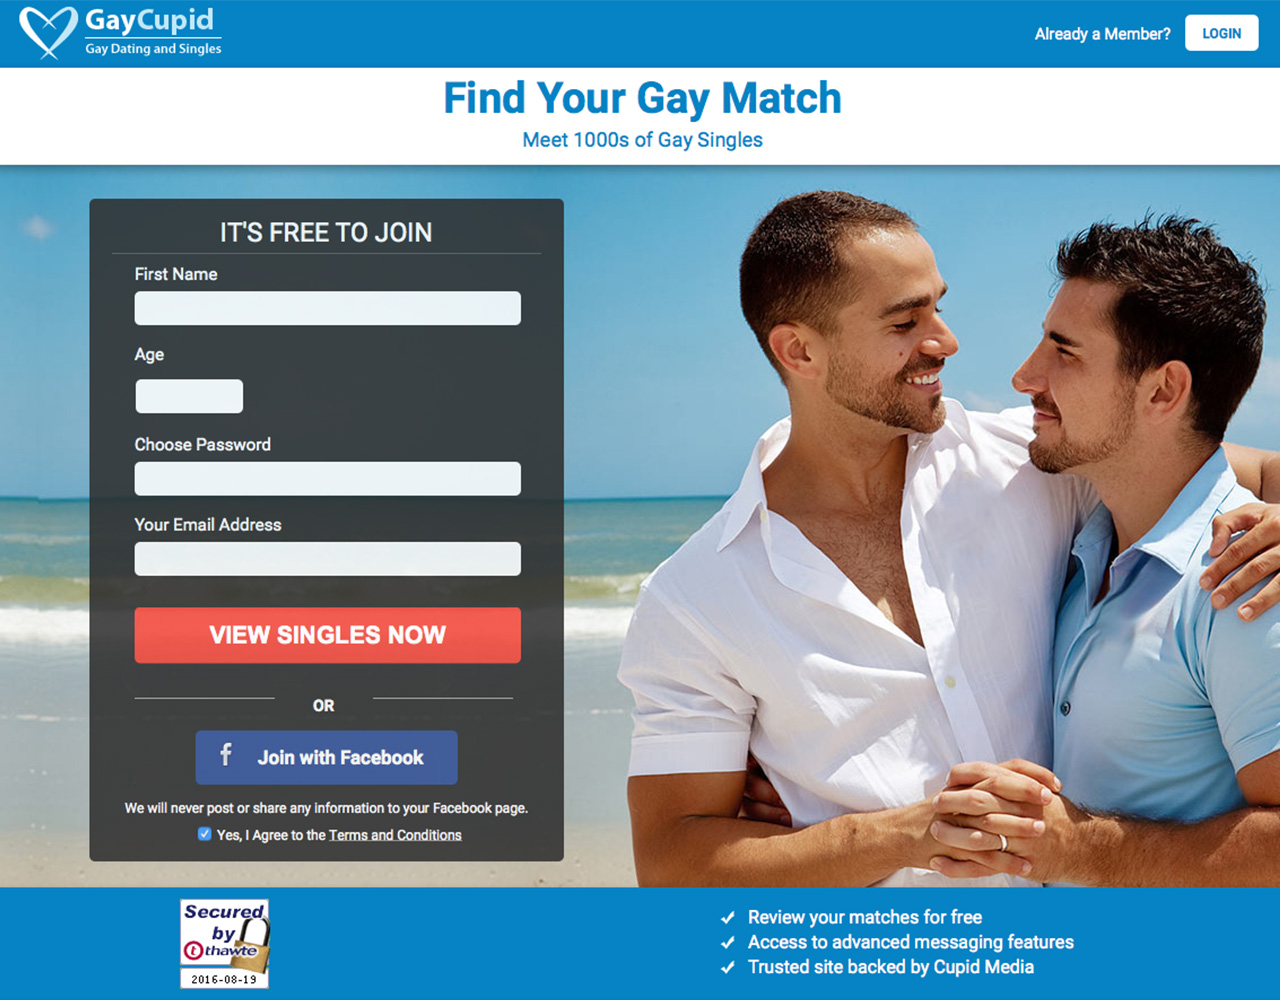 paris gay dating site Gay dating in paris (tn) if you are looking for gays in paris, tn you may find your match - here and now this free gay dating site provides you with all those features which make searching and browsing as easy as you've always wished for.